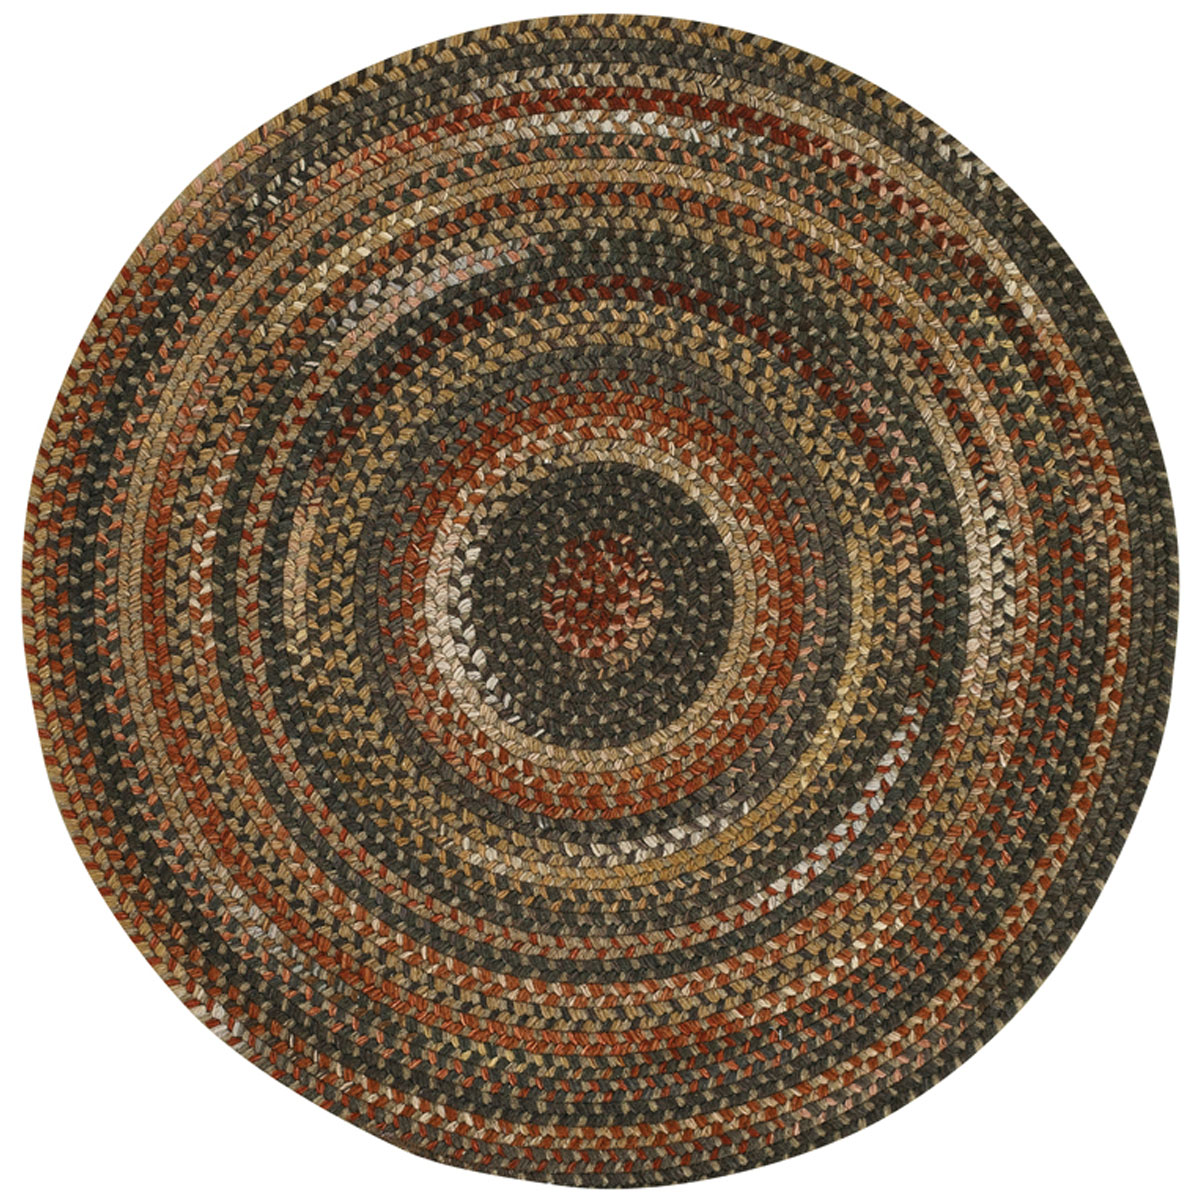 Country Home Decor Braided Wool Rugs By Capel